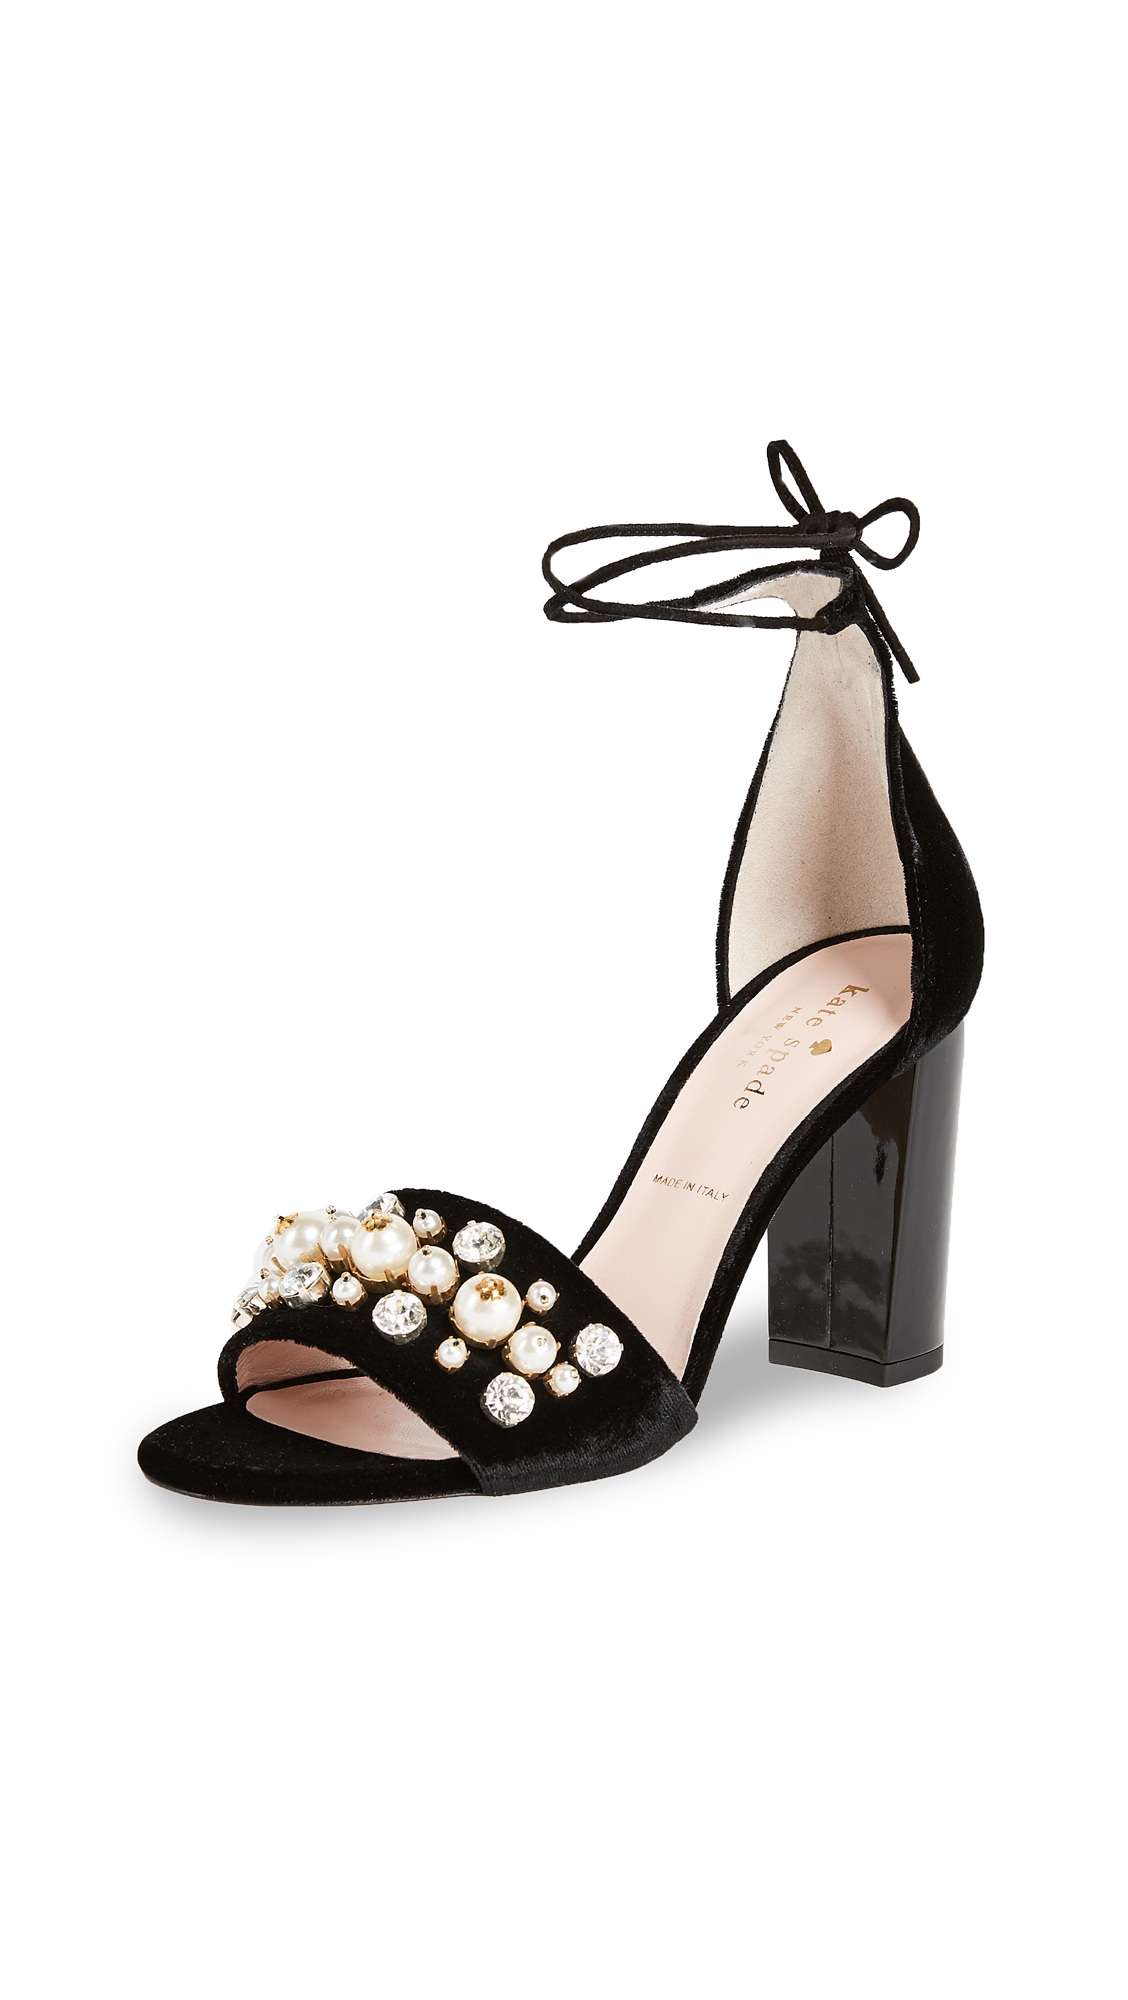 Kate Spade New York Iverna Bejeweled Pumps - Black